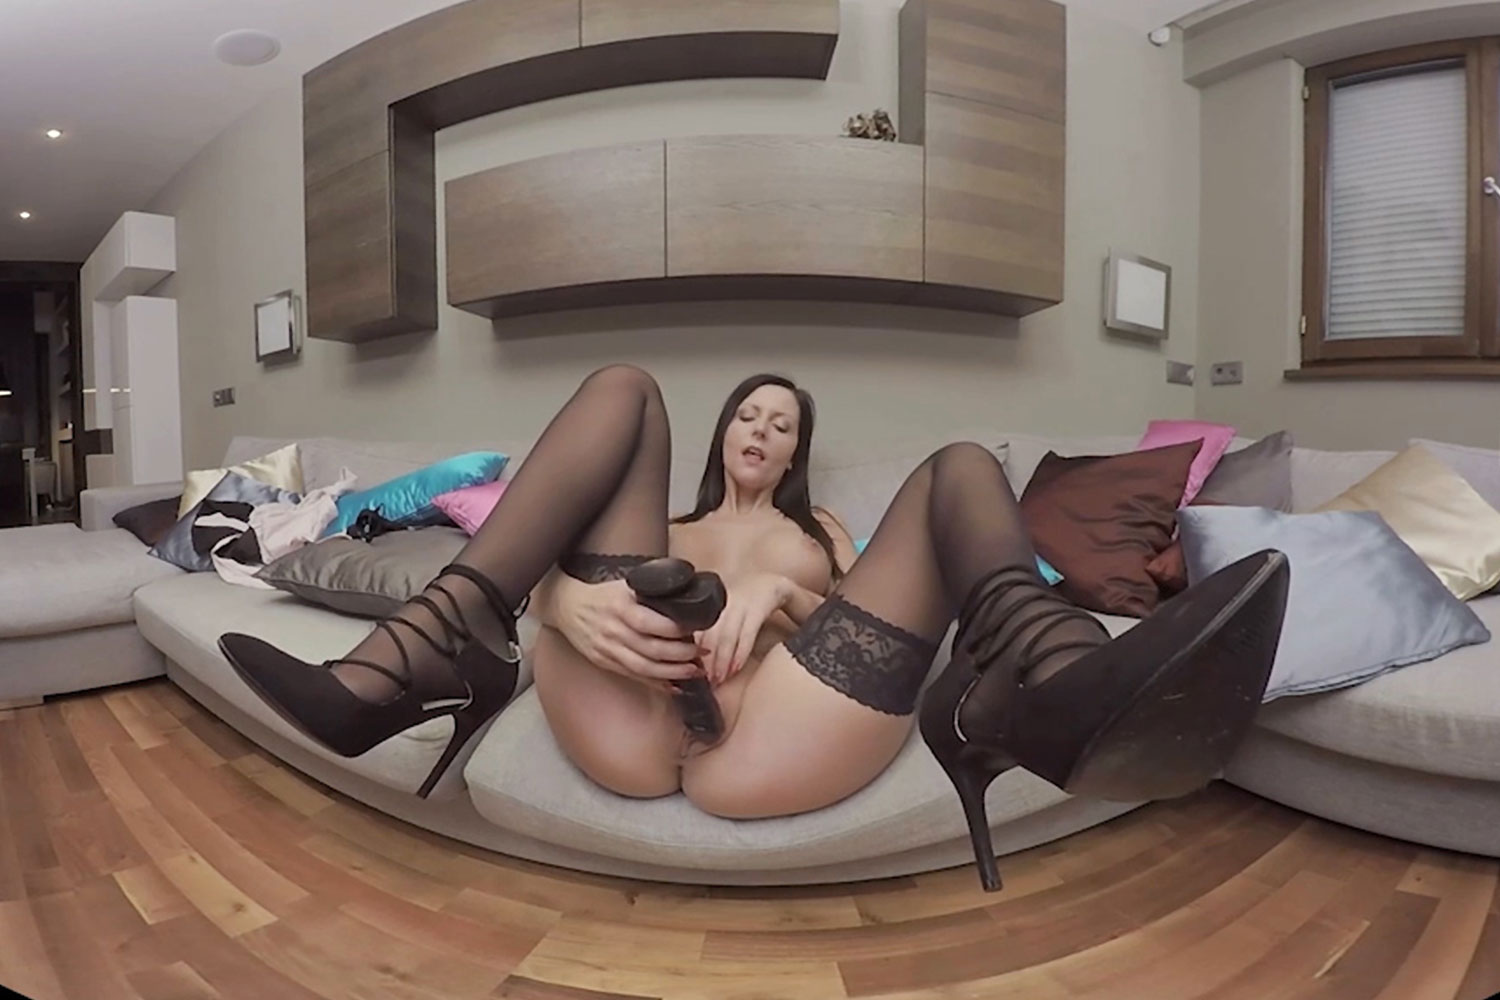 Horny secretary with a giant dildo in her pussy VR Porn Video